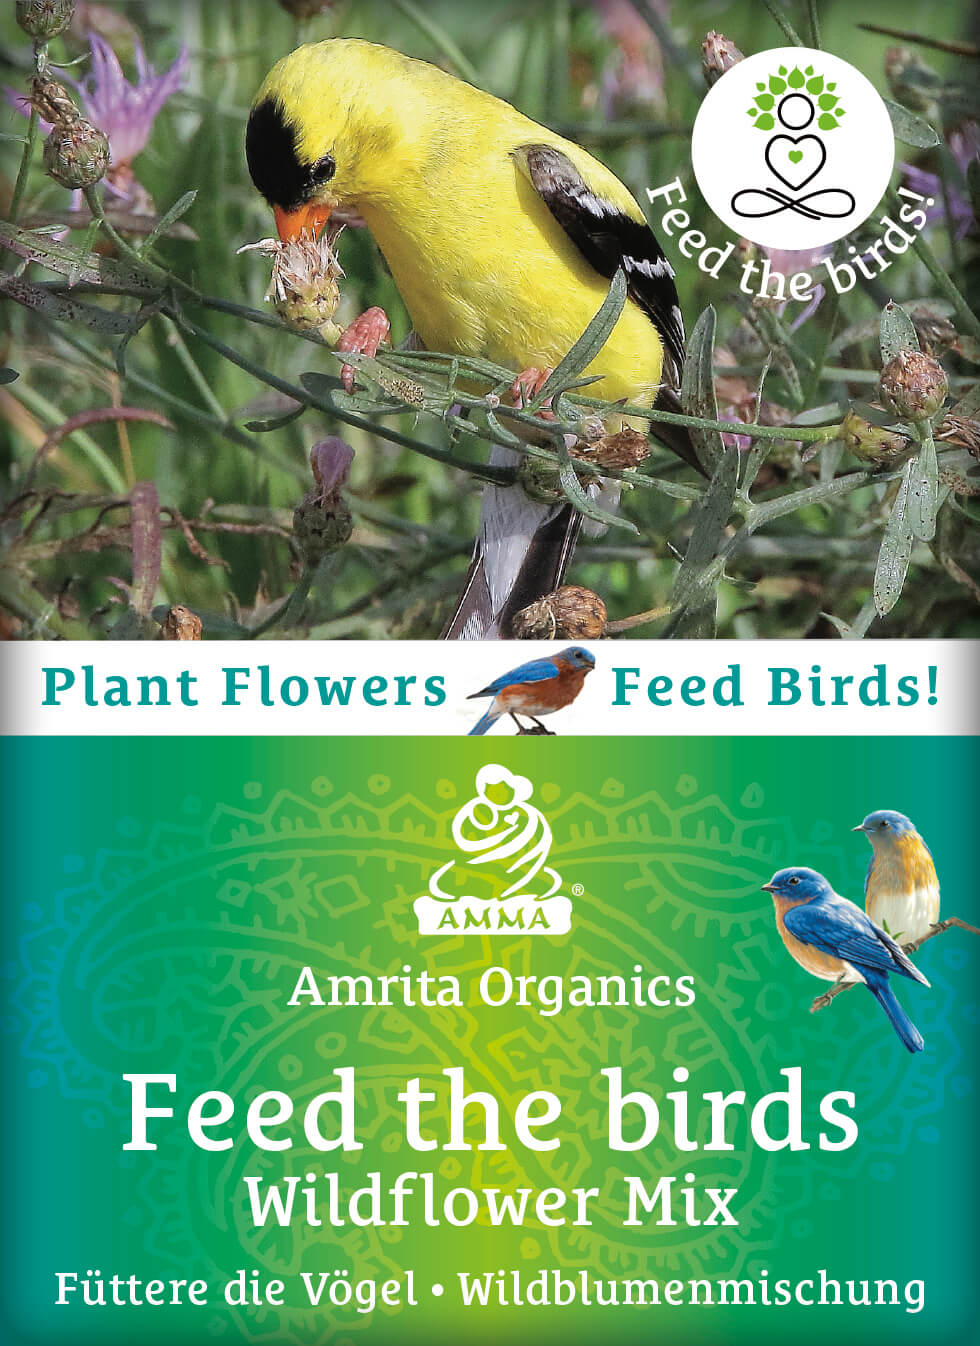 Feed the birds - Wildflower mixture, organic